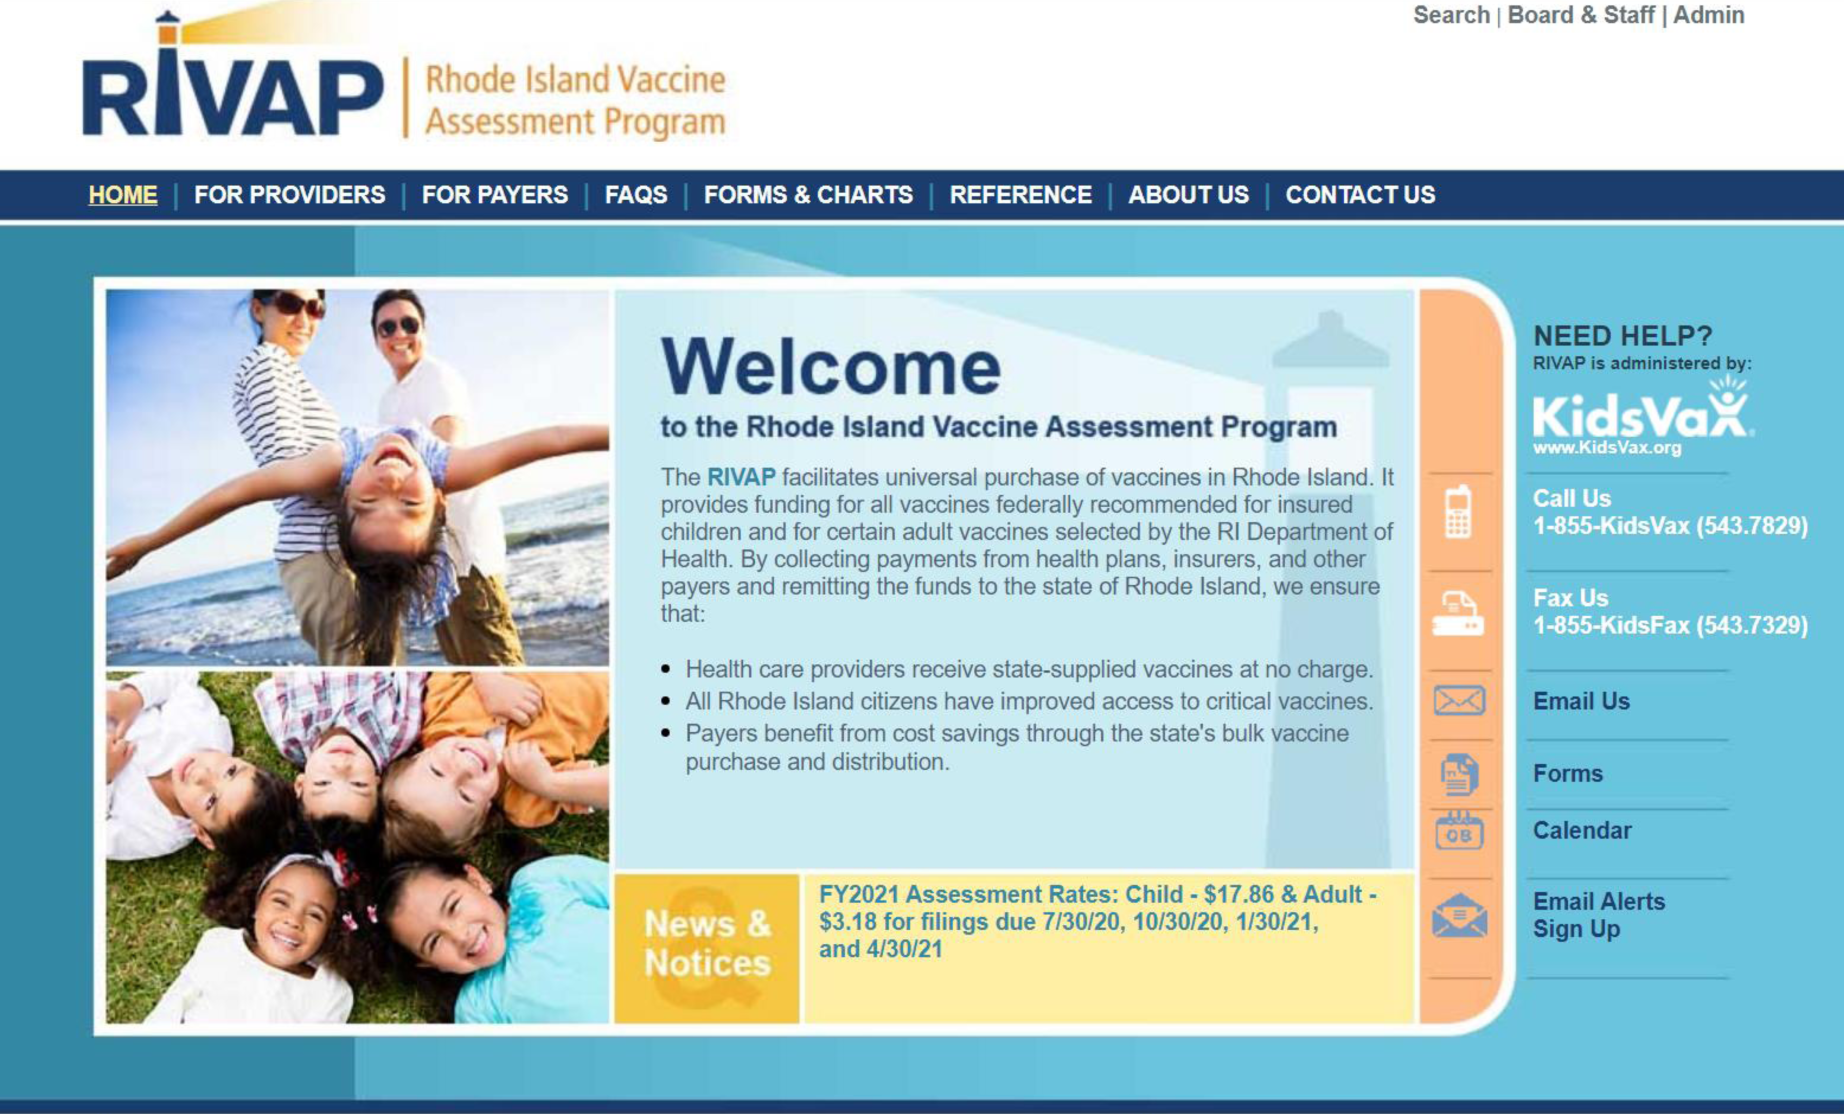 Rhode Island Vaccine Assessment